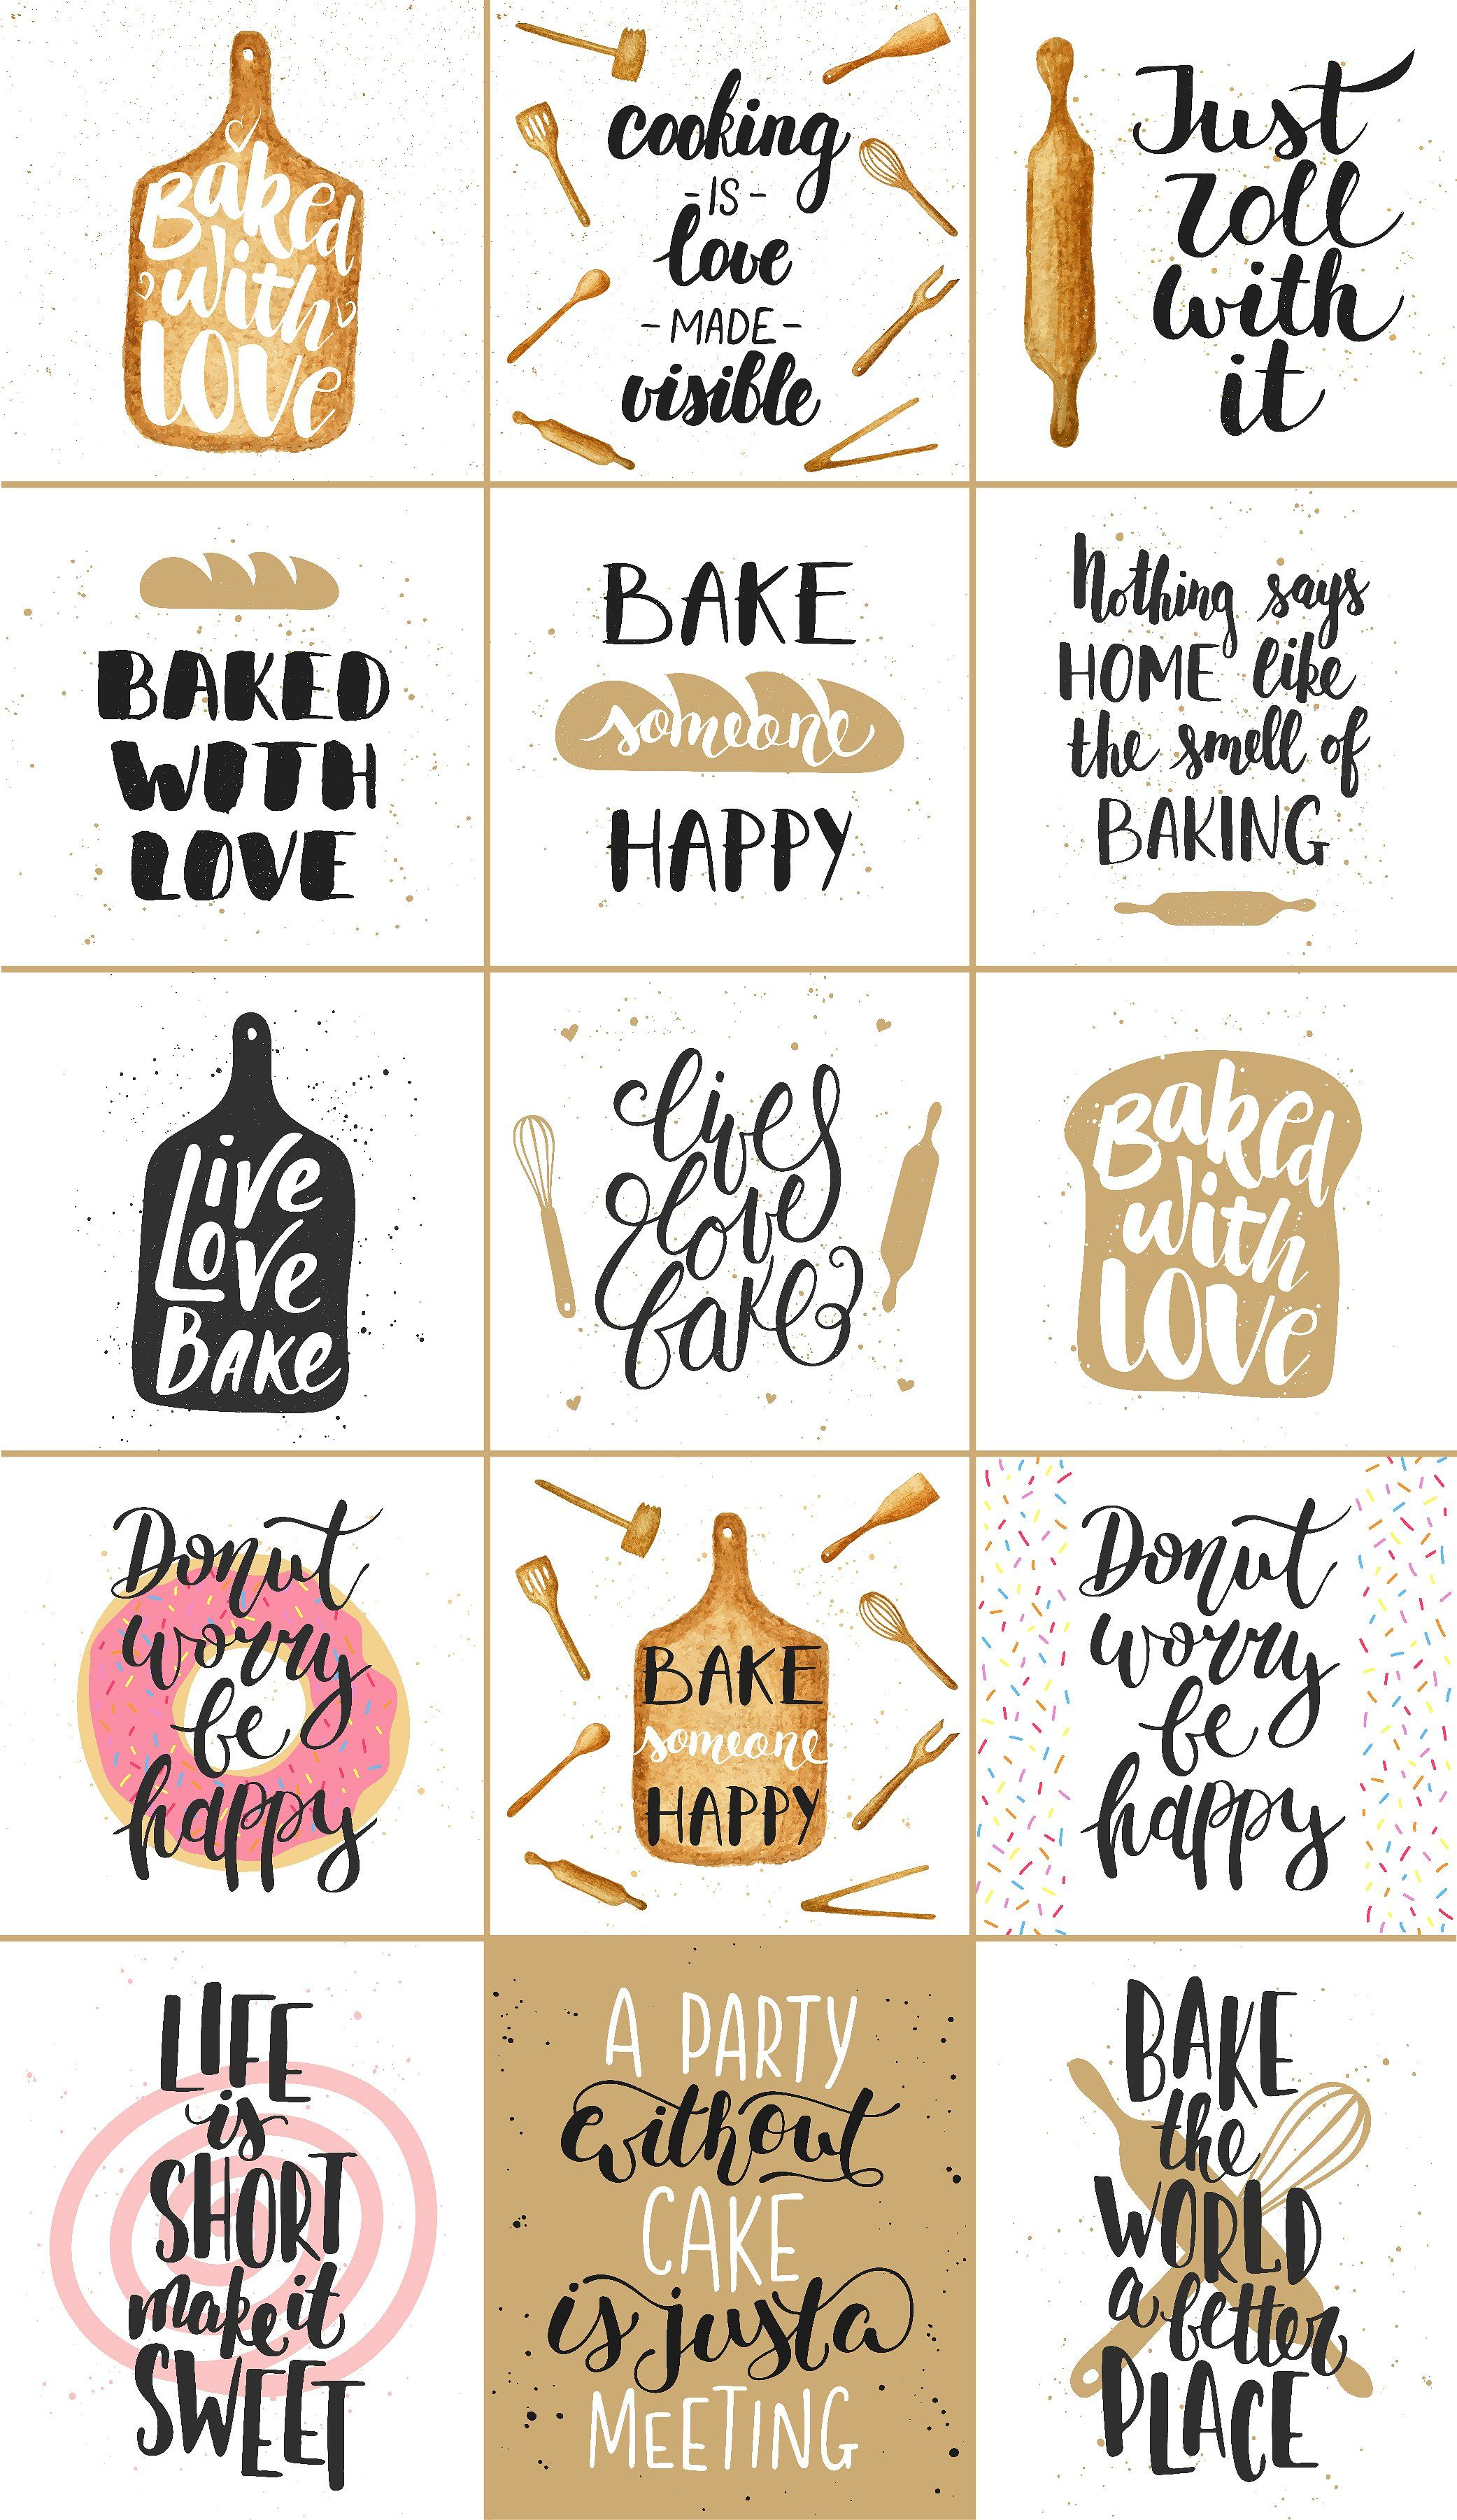 Bakery Quotes And Posters Bakery Quotes Baking Quotes Bakery Packaging